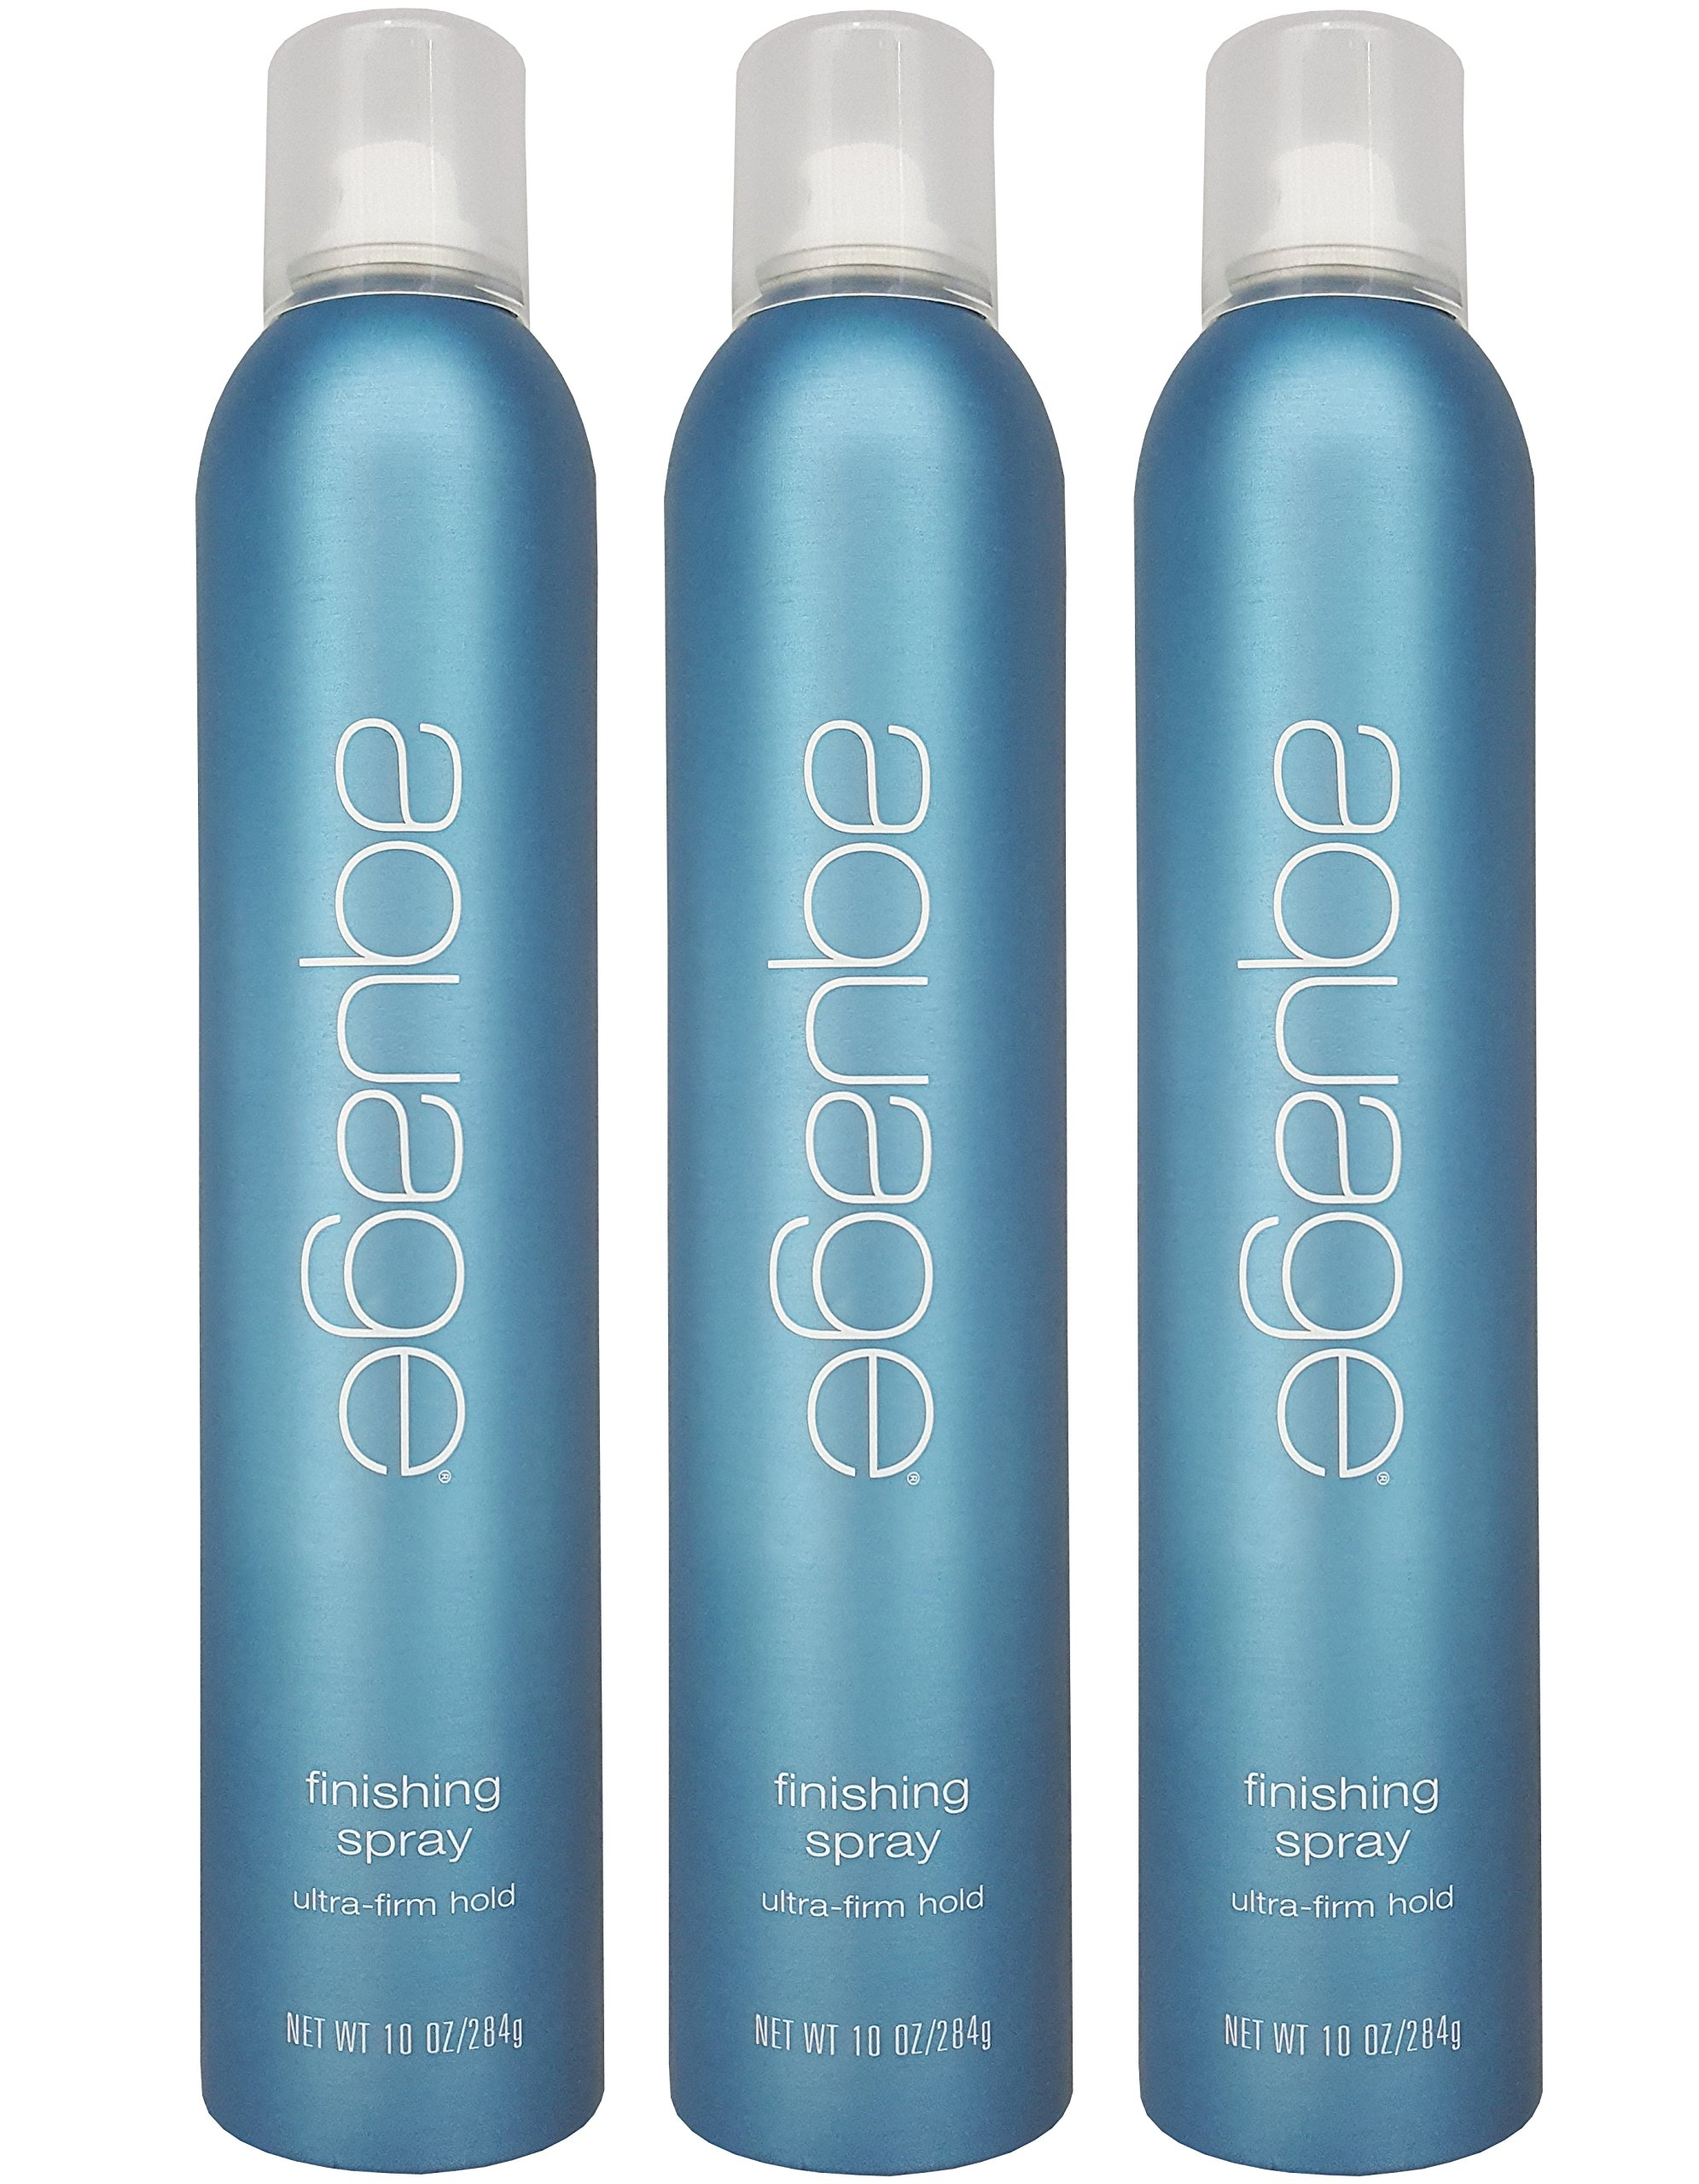 Aquage Finishing Spray Ultra-Firm Hold 10 oz (Pack of 3)